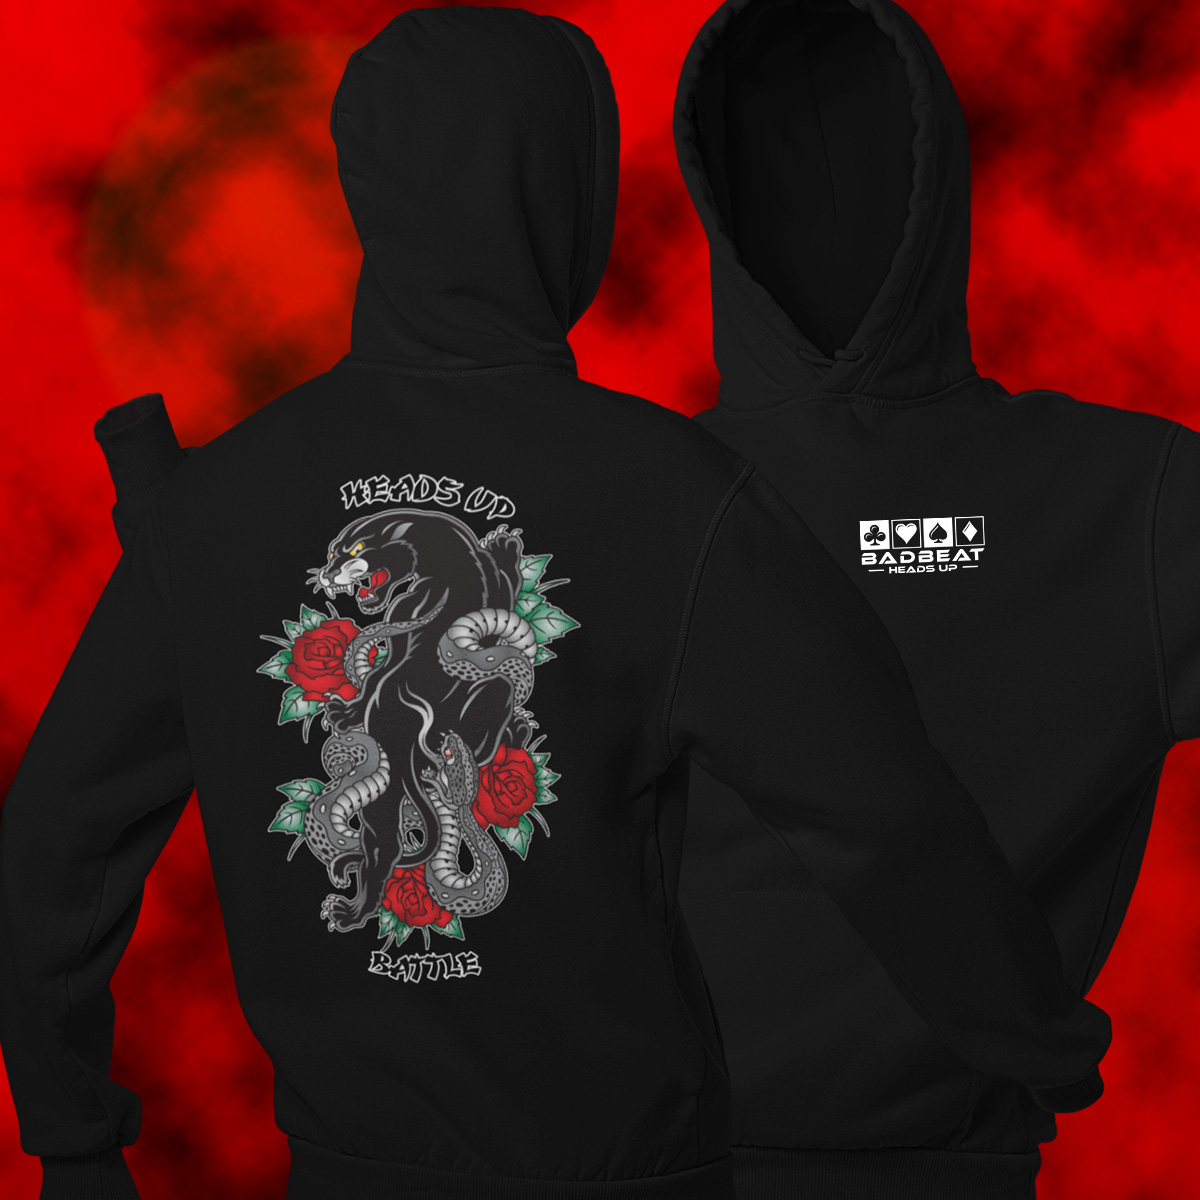 Heads Up Battle Poker Hoodie - Front n Back